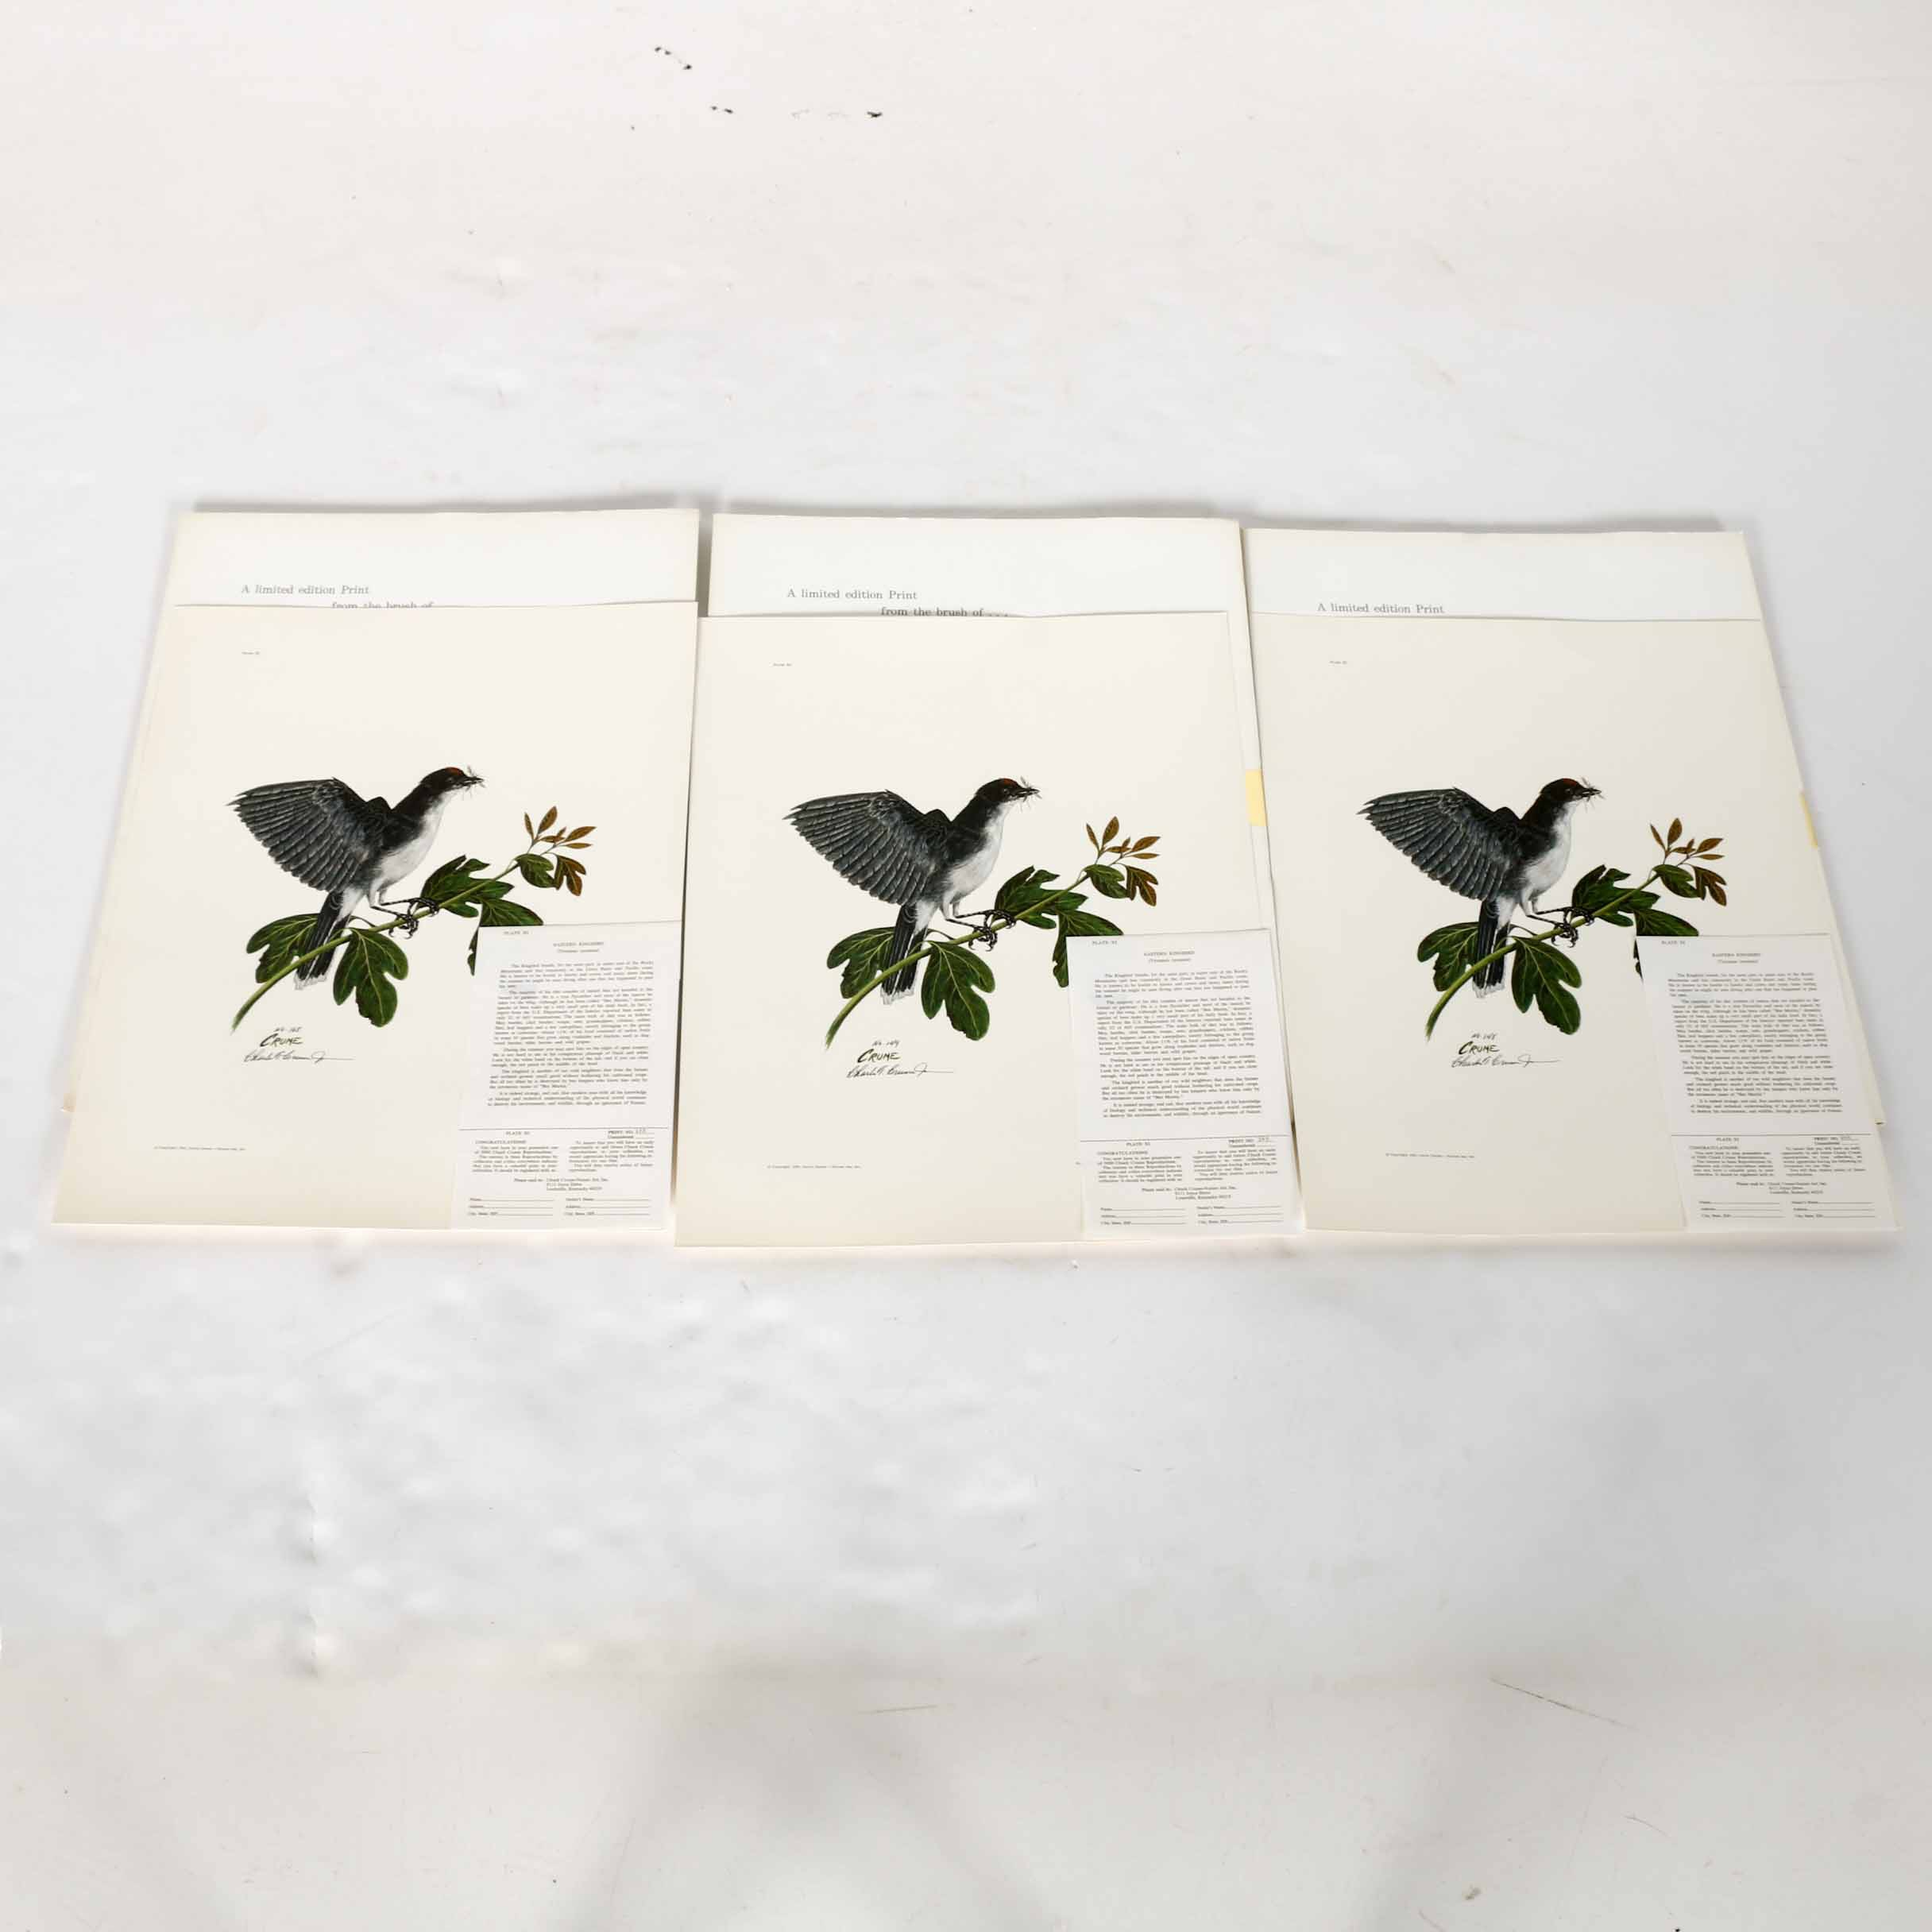 Charles Crume, Jr. Limited Edition Offset Lithographs of Eastern Kingbirds